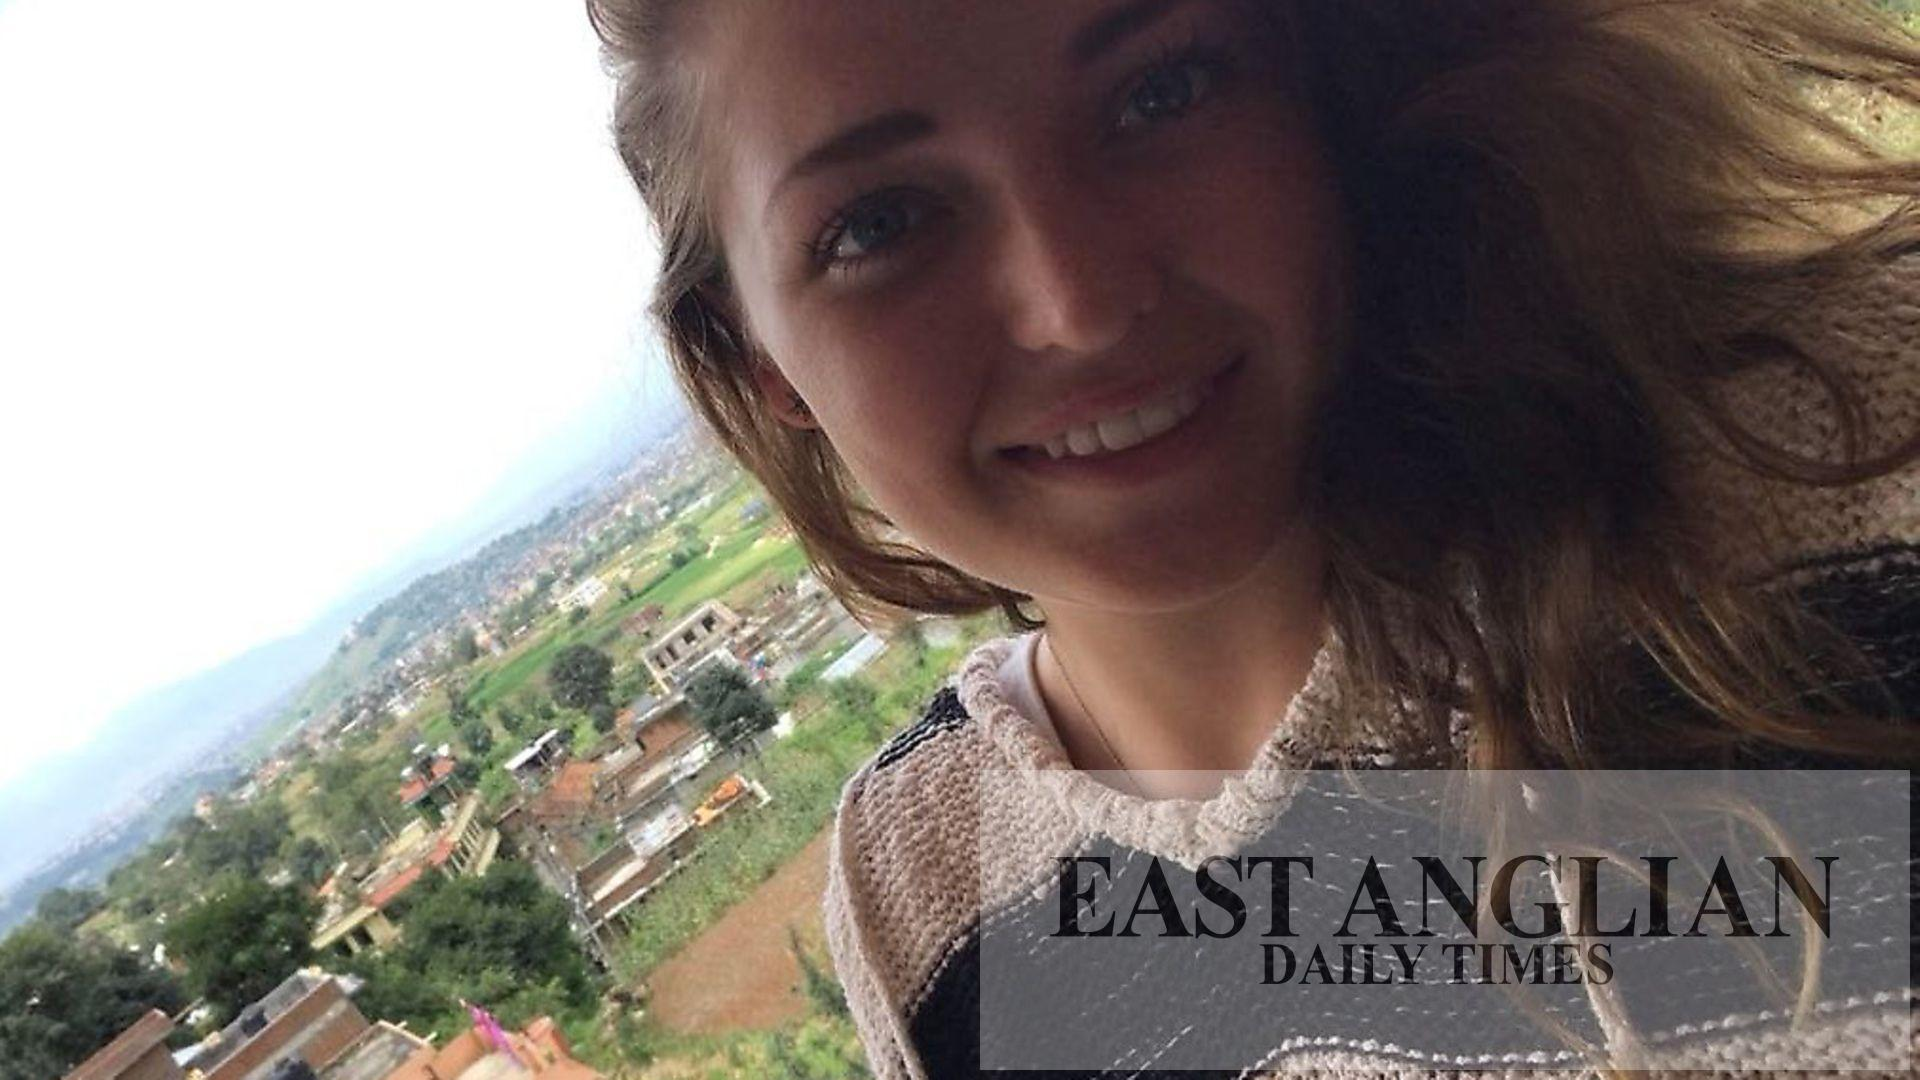 Witham MP joins fight to bring home woman 'trapped in Dubai' | East Anglian Daily Times